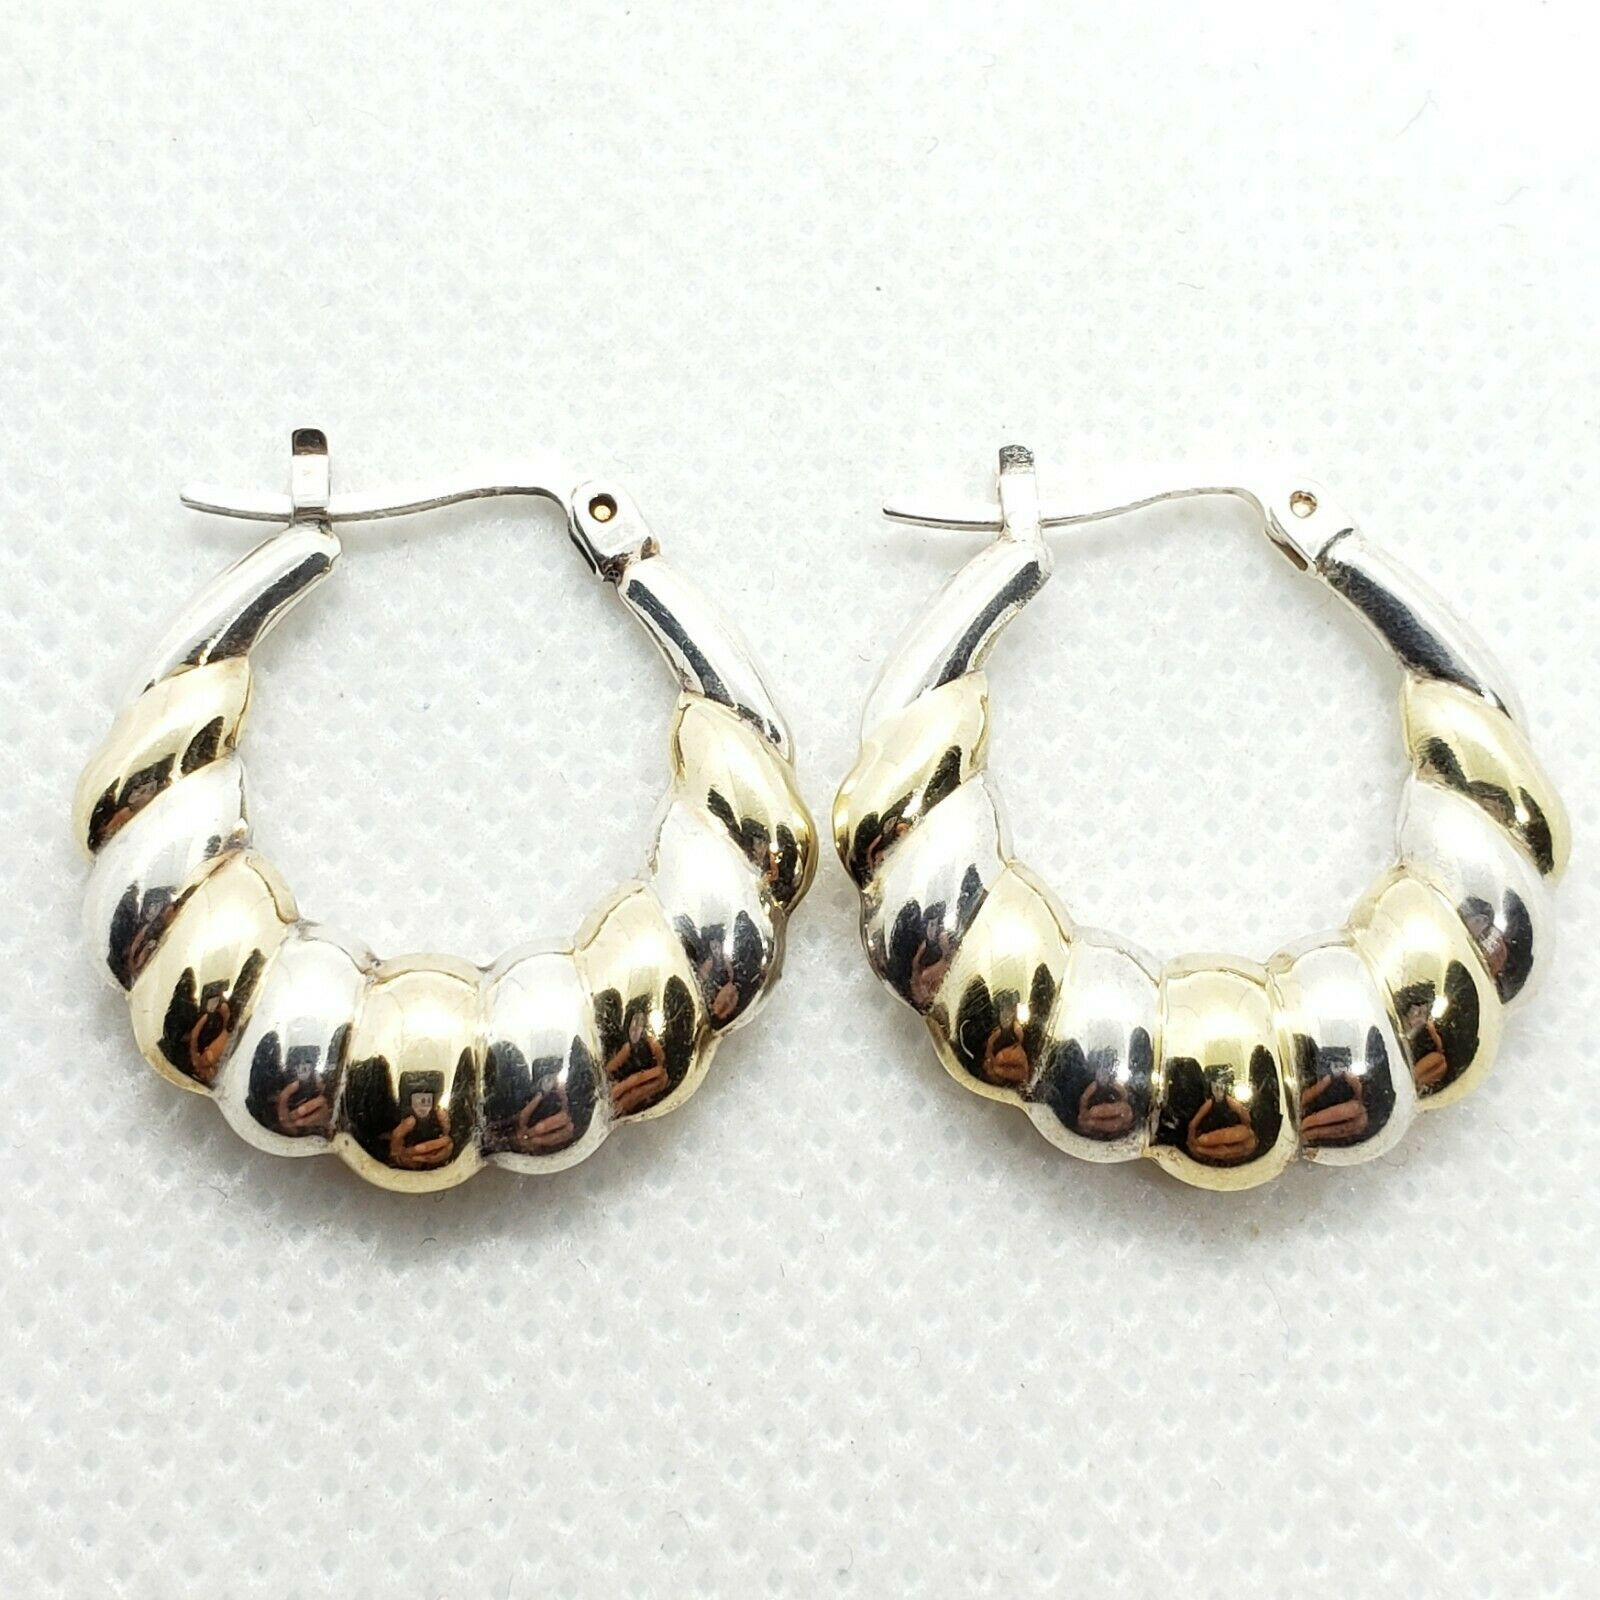 Primary image for SETA Sterling Silver 925 Ribbed C-Hoop Earrings FREE Shipping